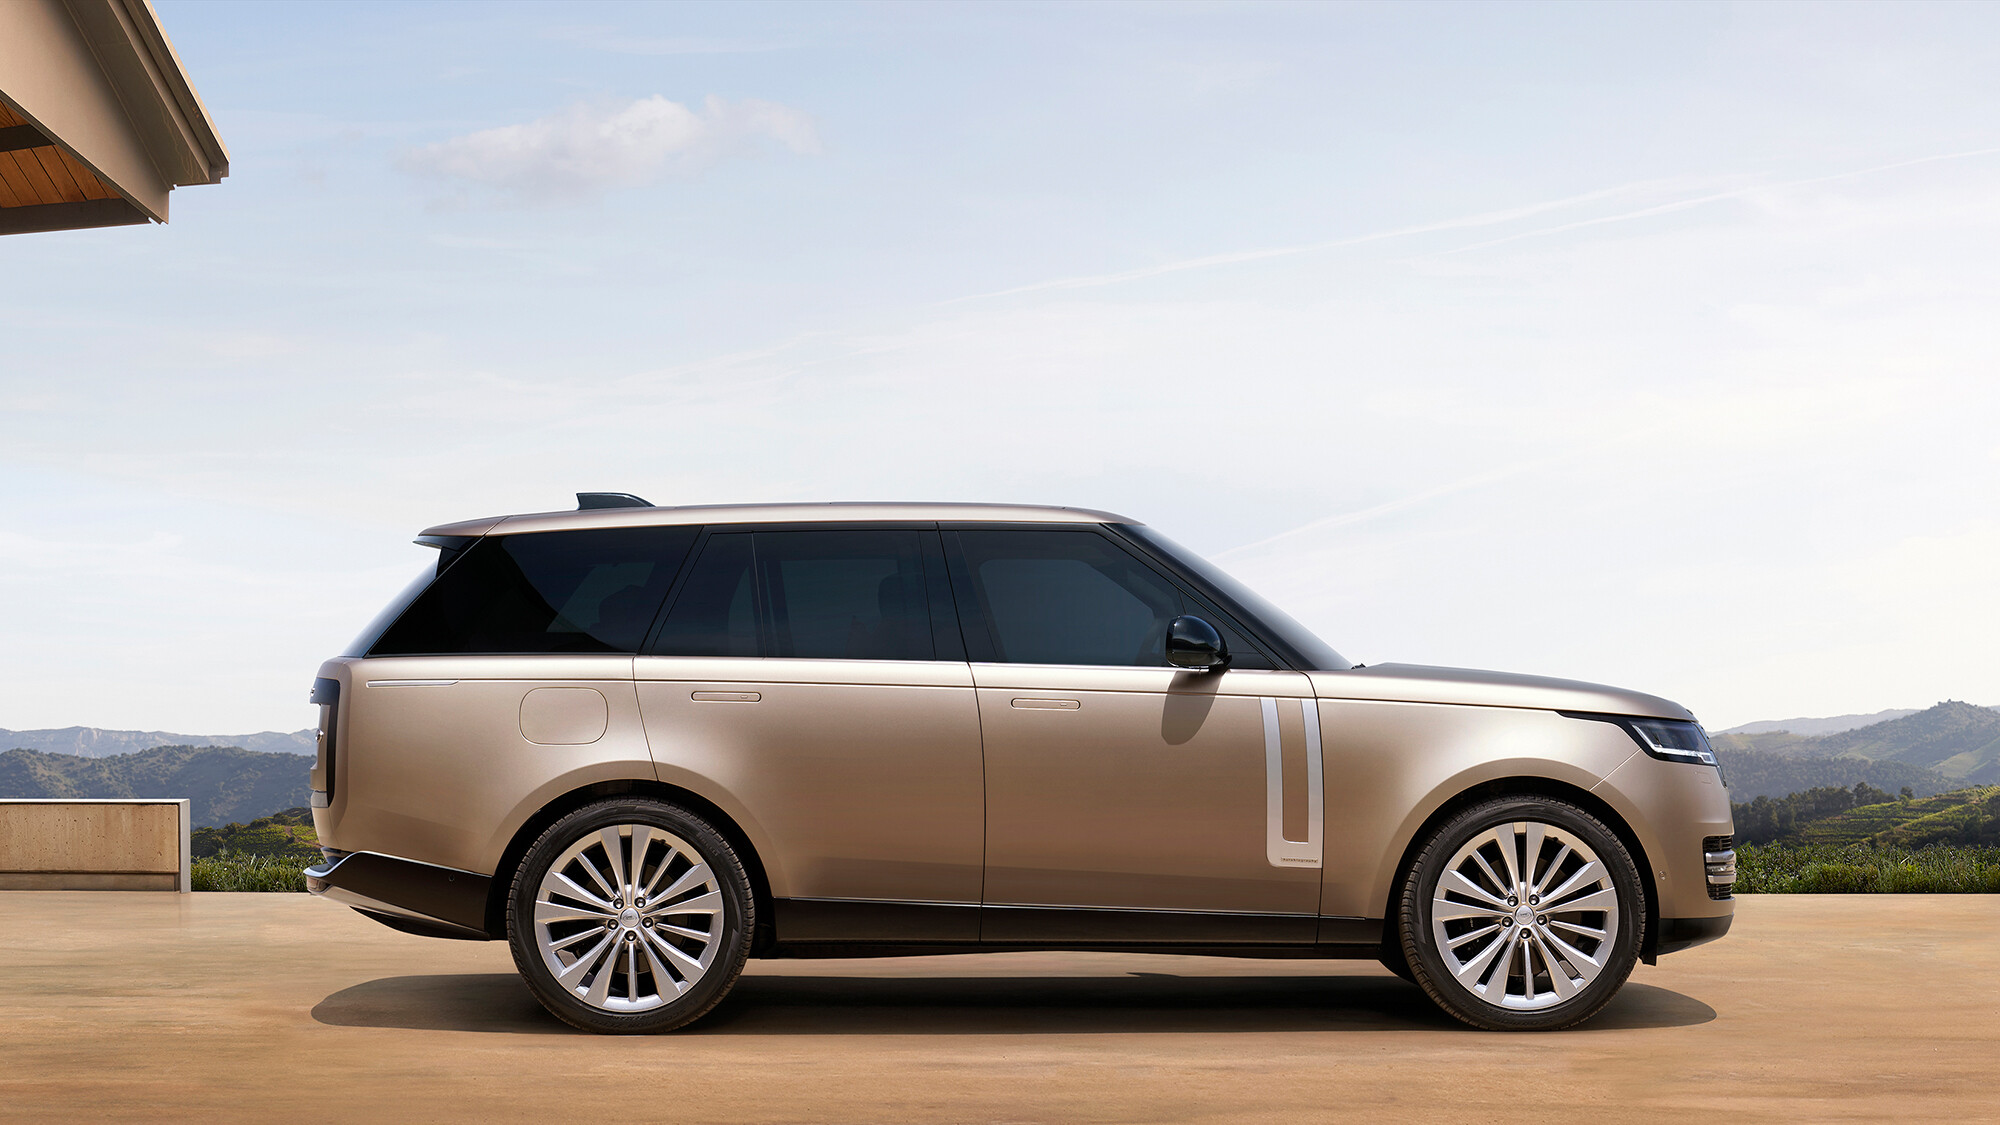 The first new Range Rover in a decade faces tougher competition